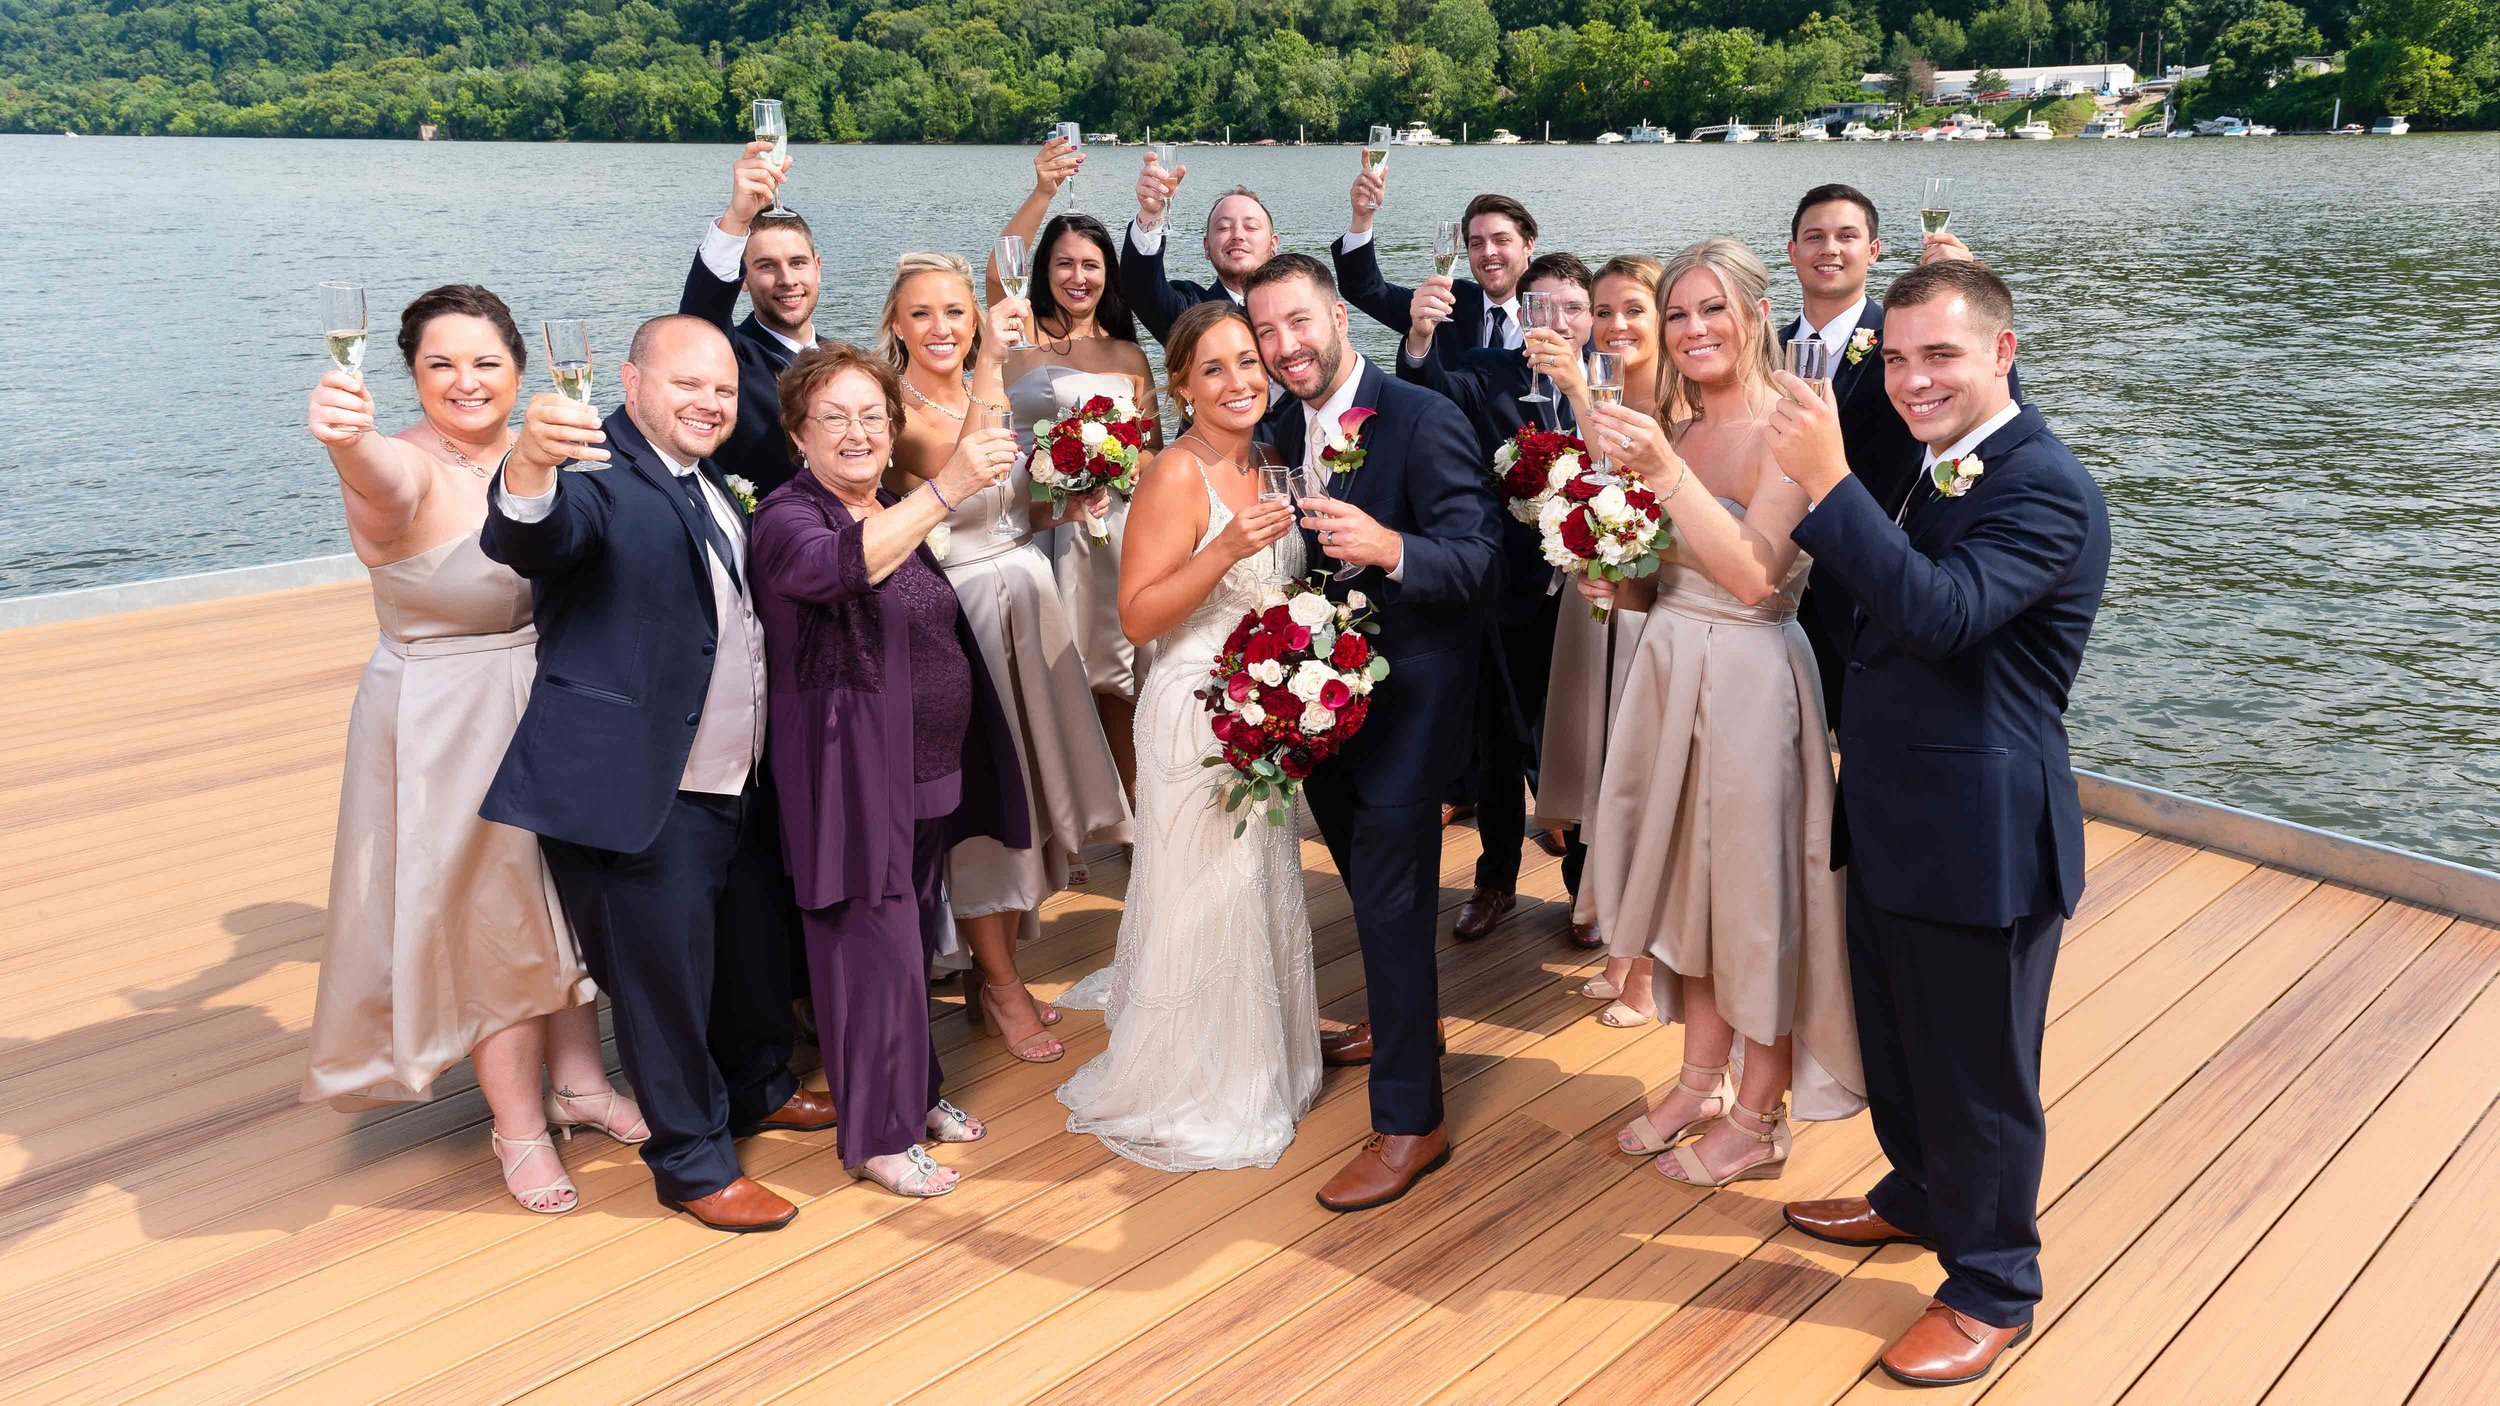 Bridal-Party-Portraits-by-River-Dock-8.jpg